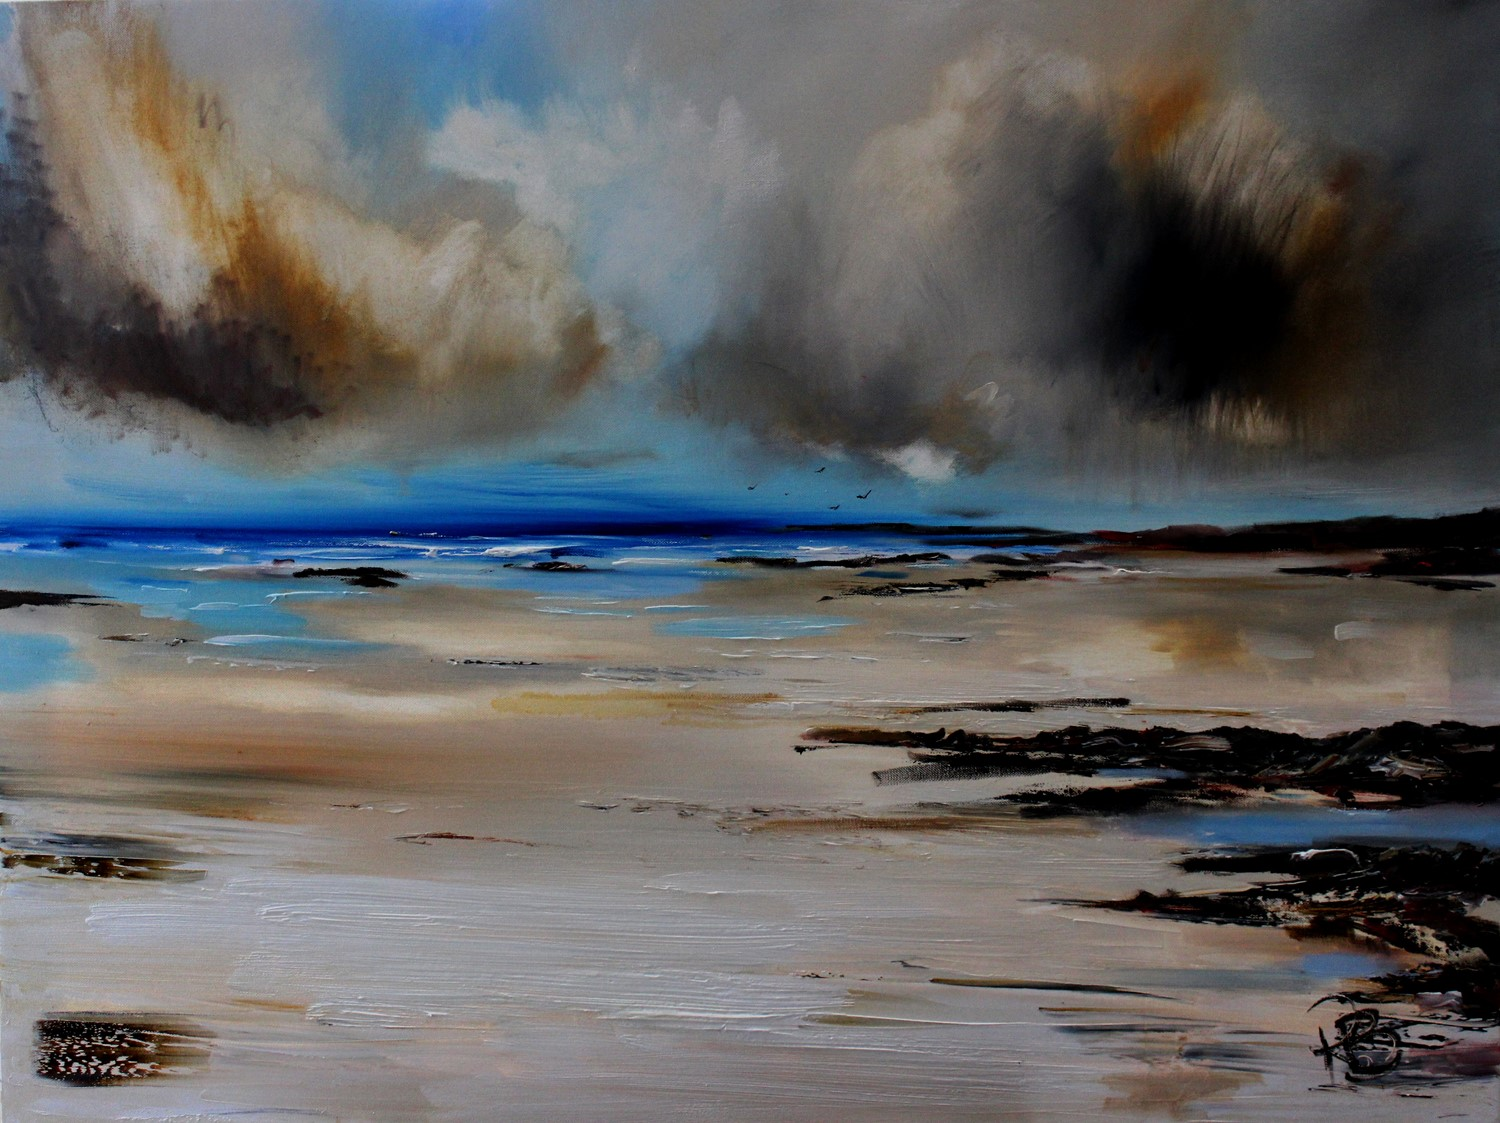 'Ominous Clouds' by artist Rosanne Barr